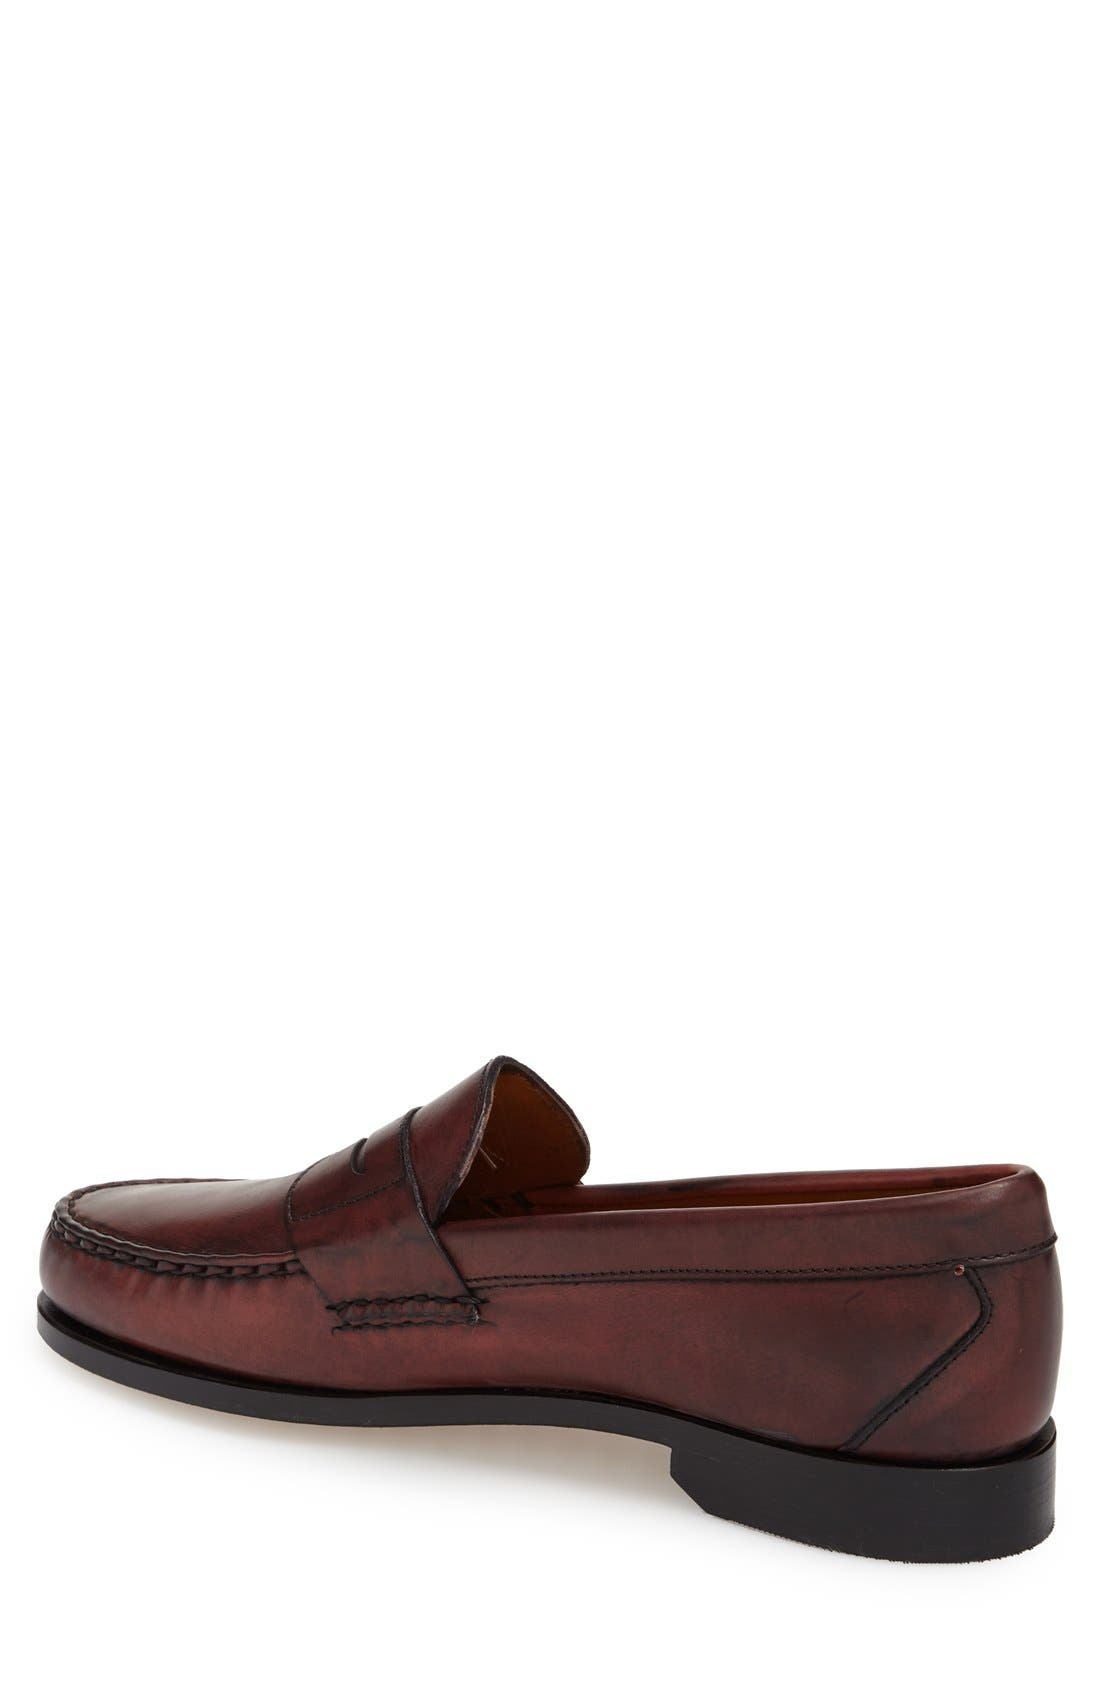 Alternate Image 2  - Allen Edmonds 'Cavanaugh' Penny Loafer (Men)